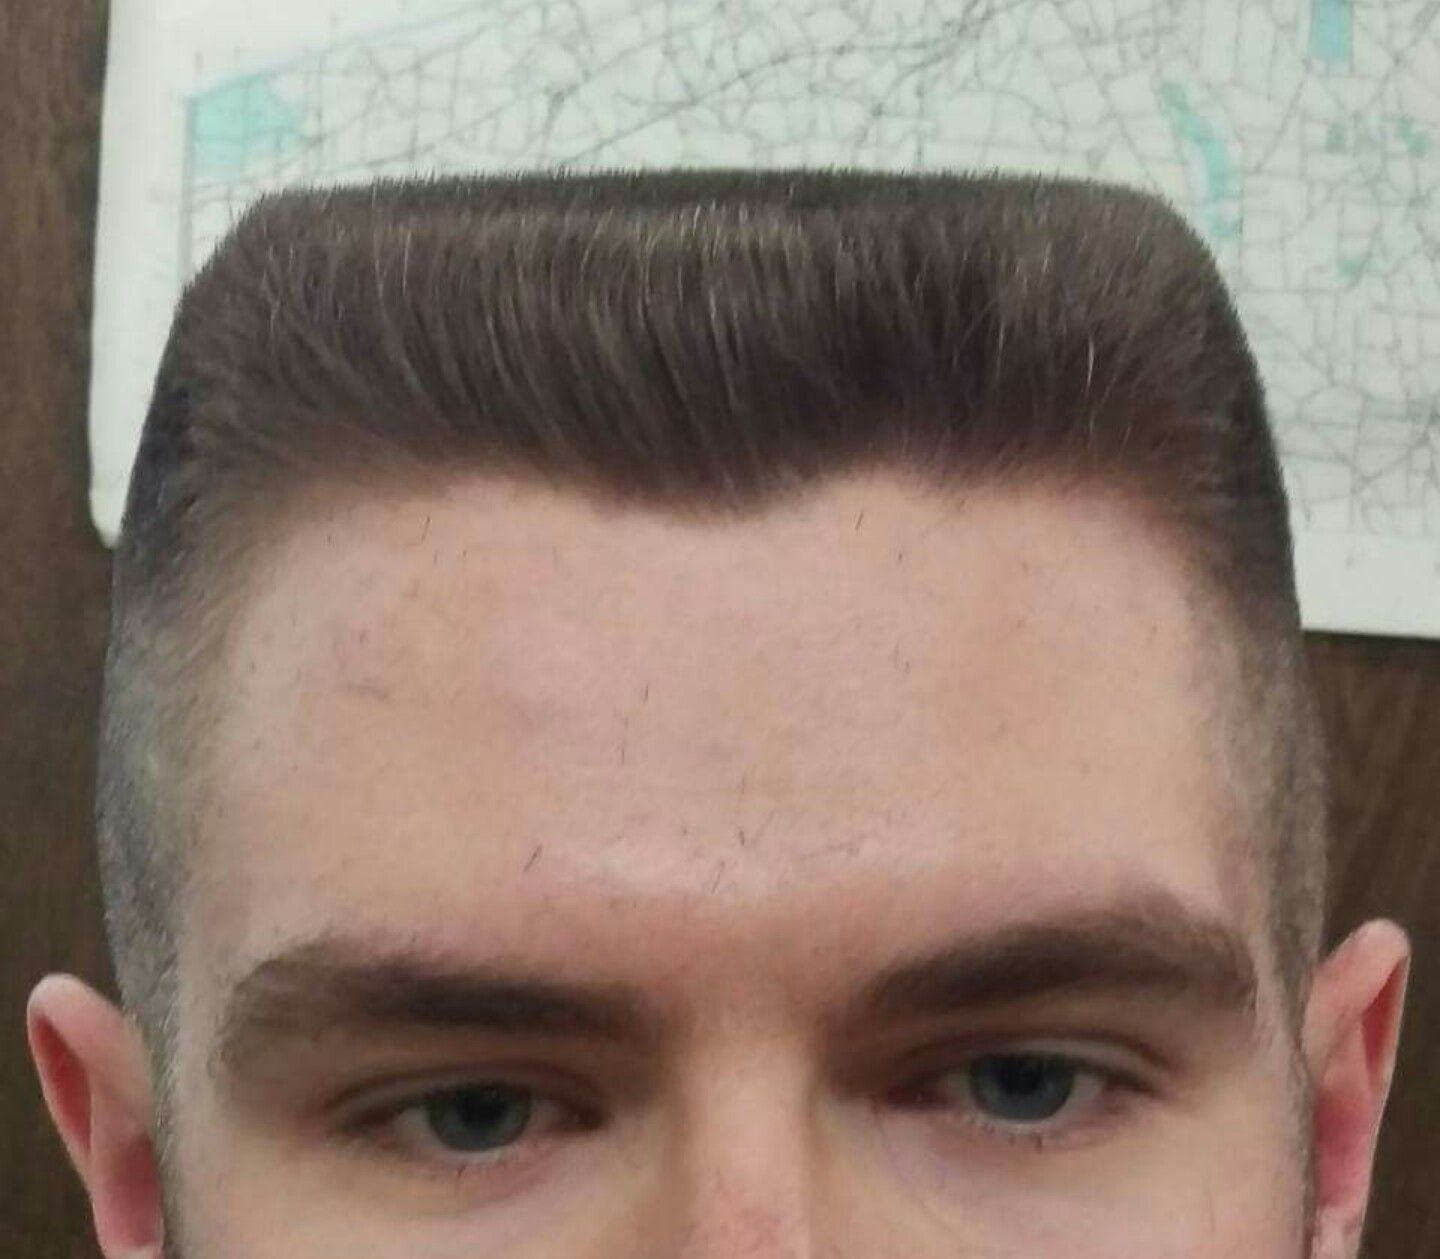 Standard Flat Top Haircut Flat Top Haircut Mens Hairstyles Short Mens Hairstyle Images